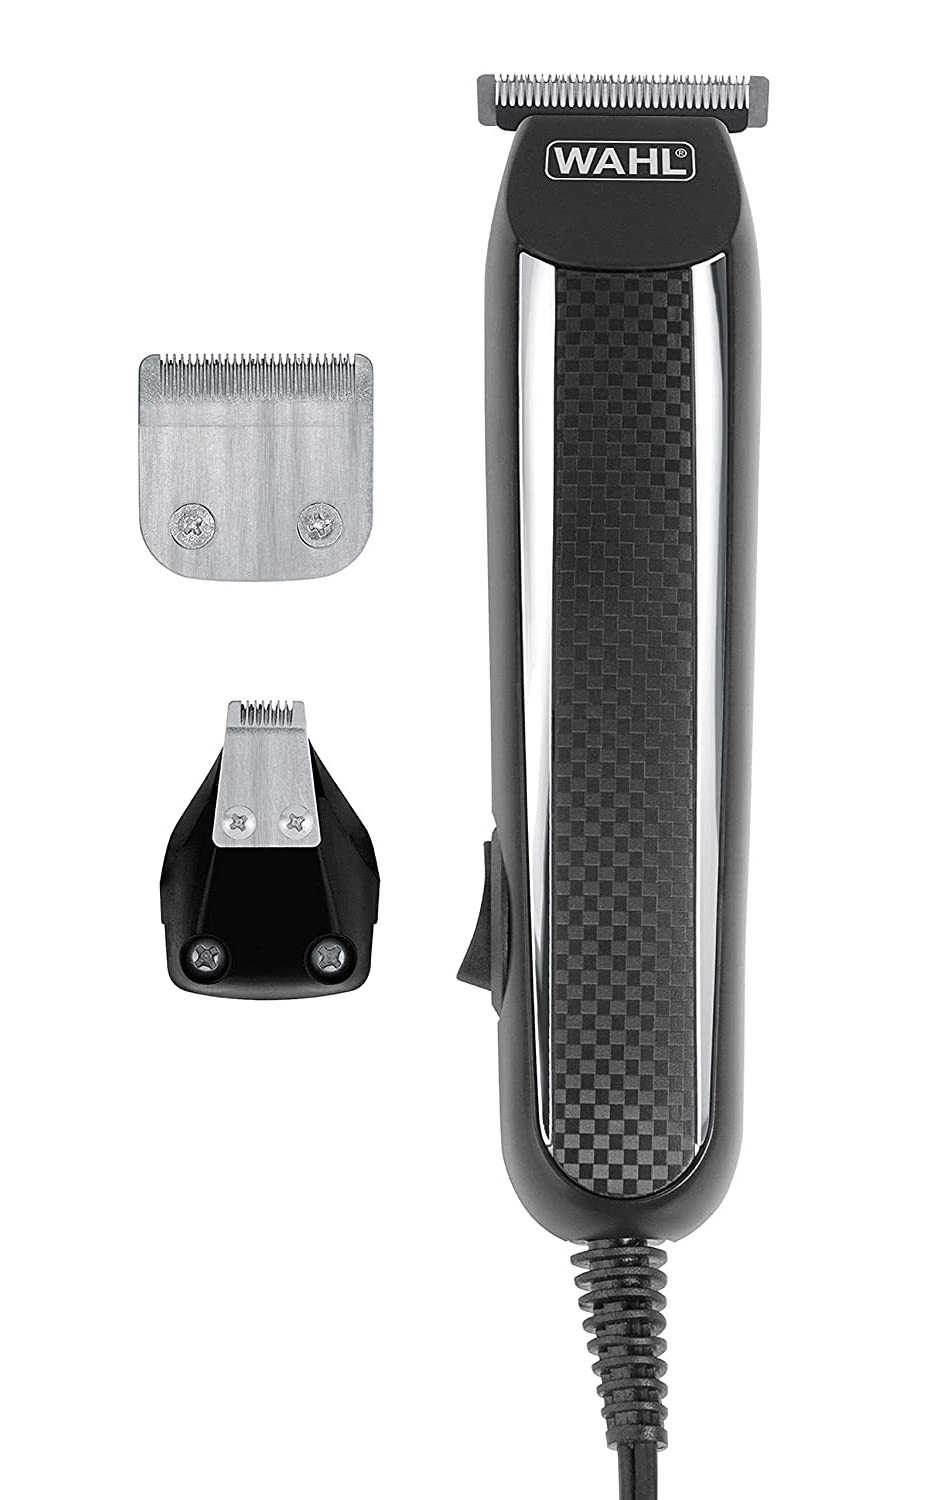 WAHL PowerPro Trimmer and Edger